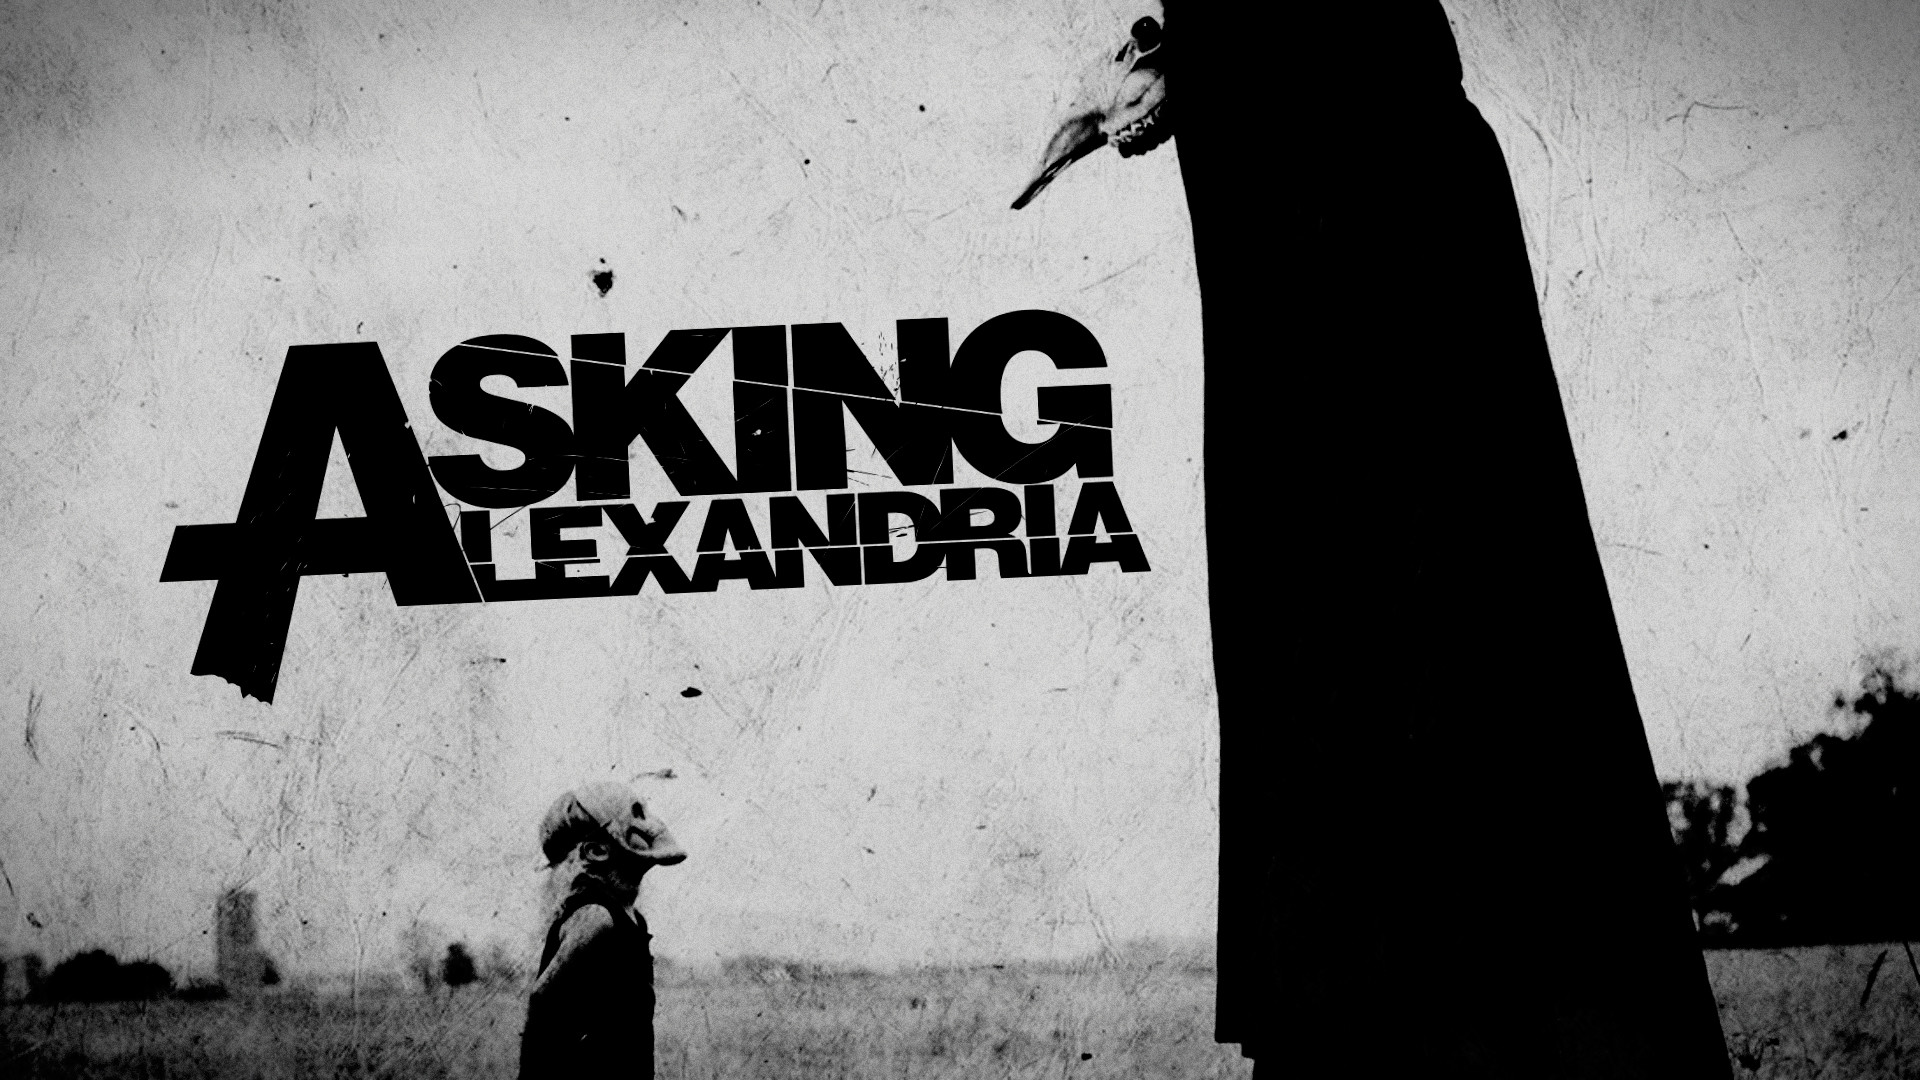 1920x1080 Asking Alexandria Wallpaper for Desktop.